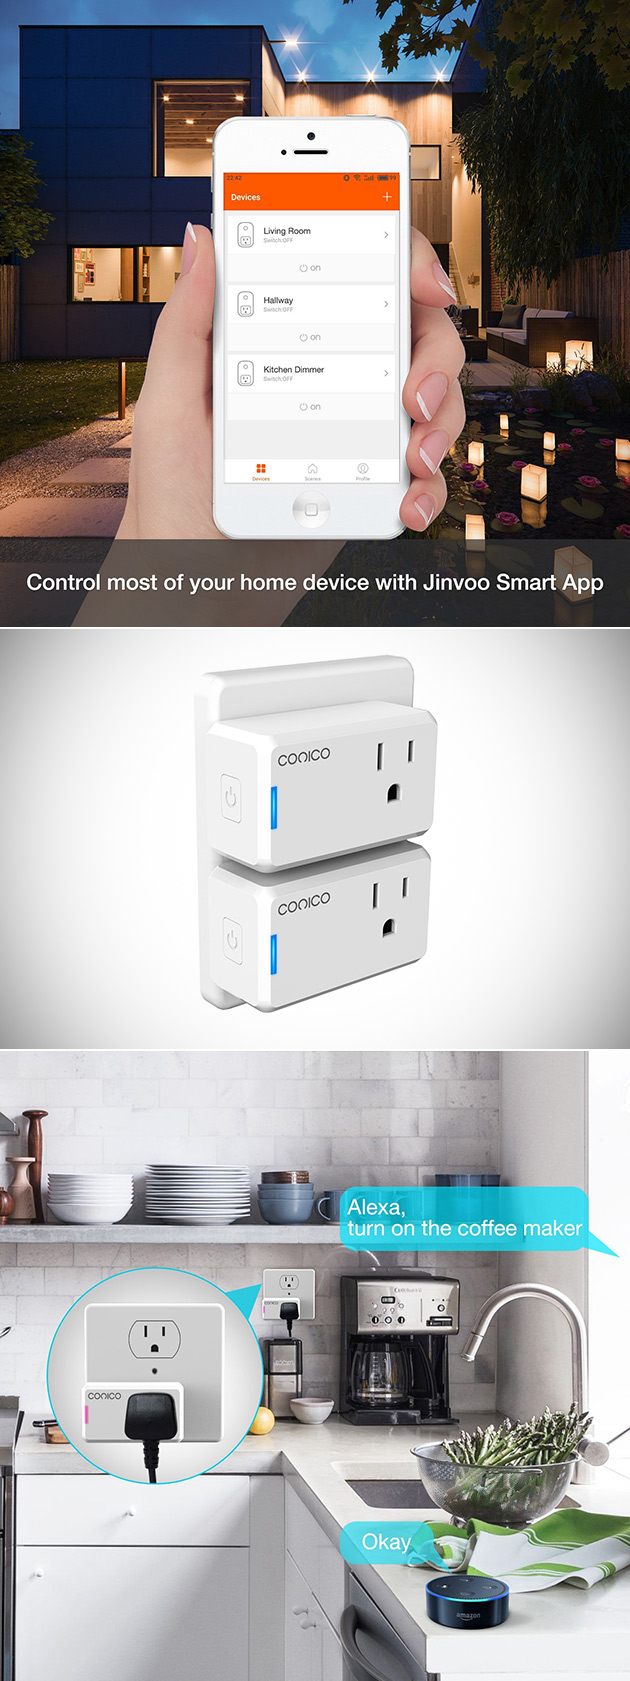 Conico WiFi Smart Plug